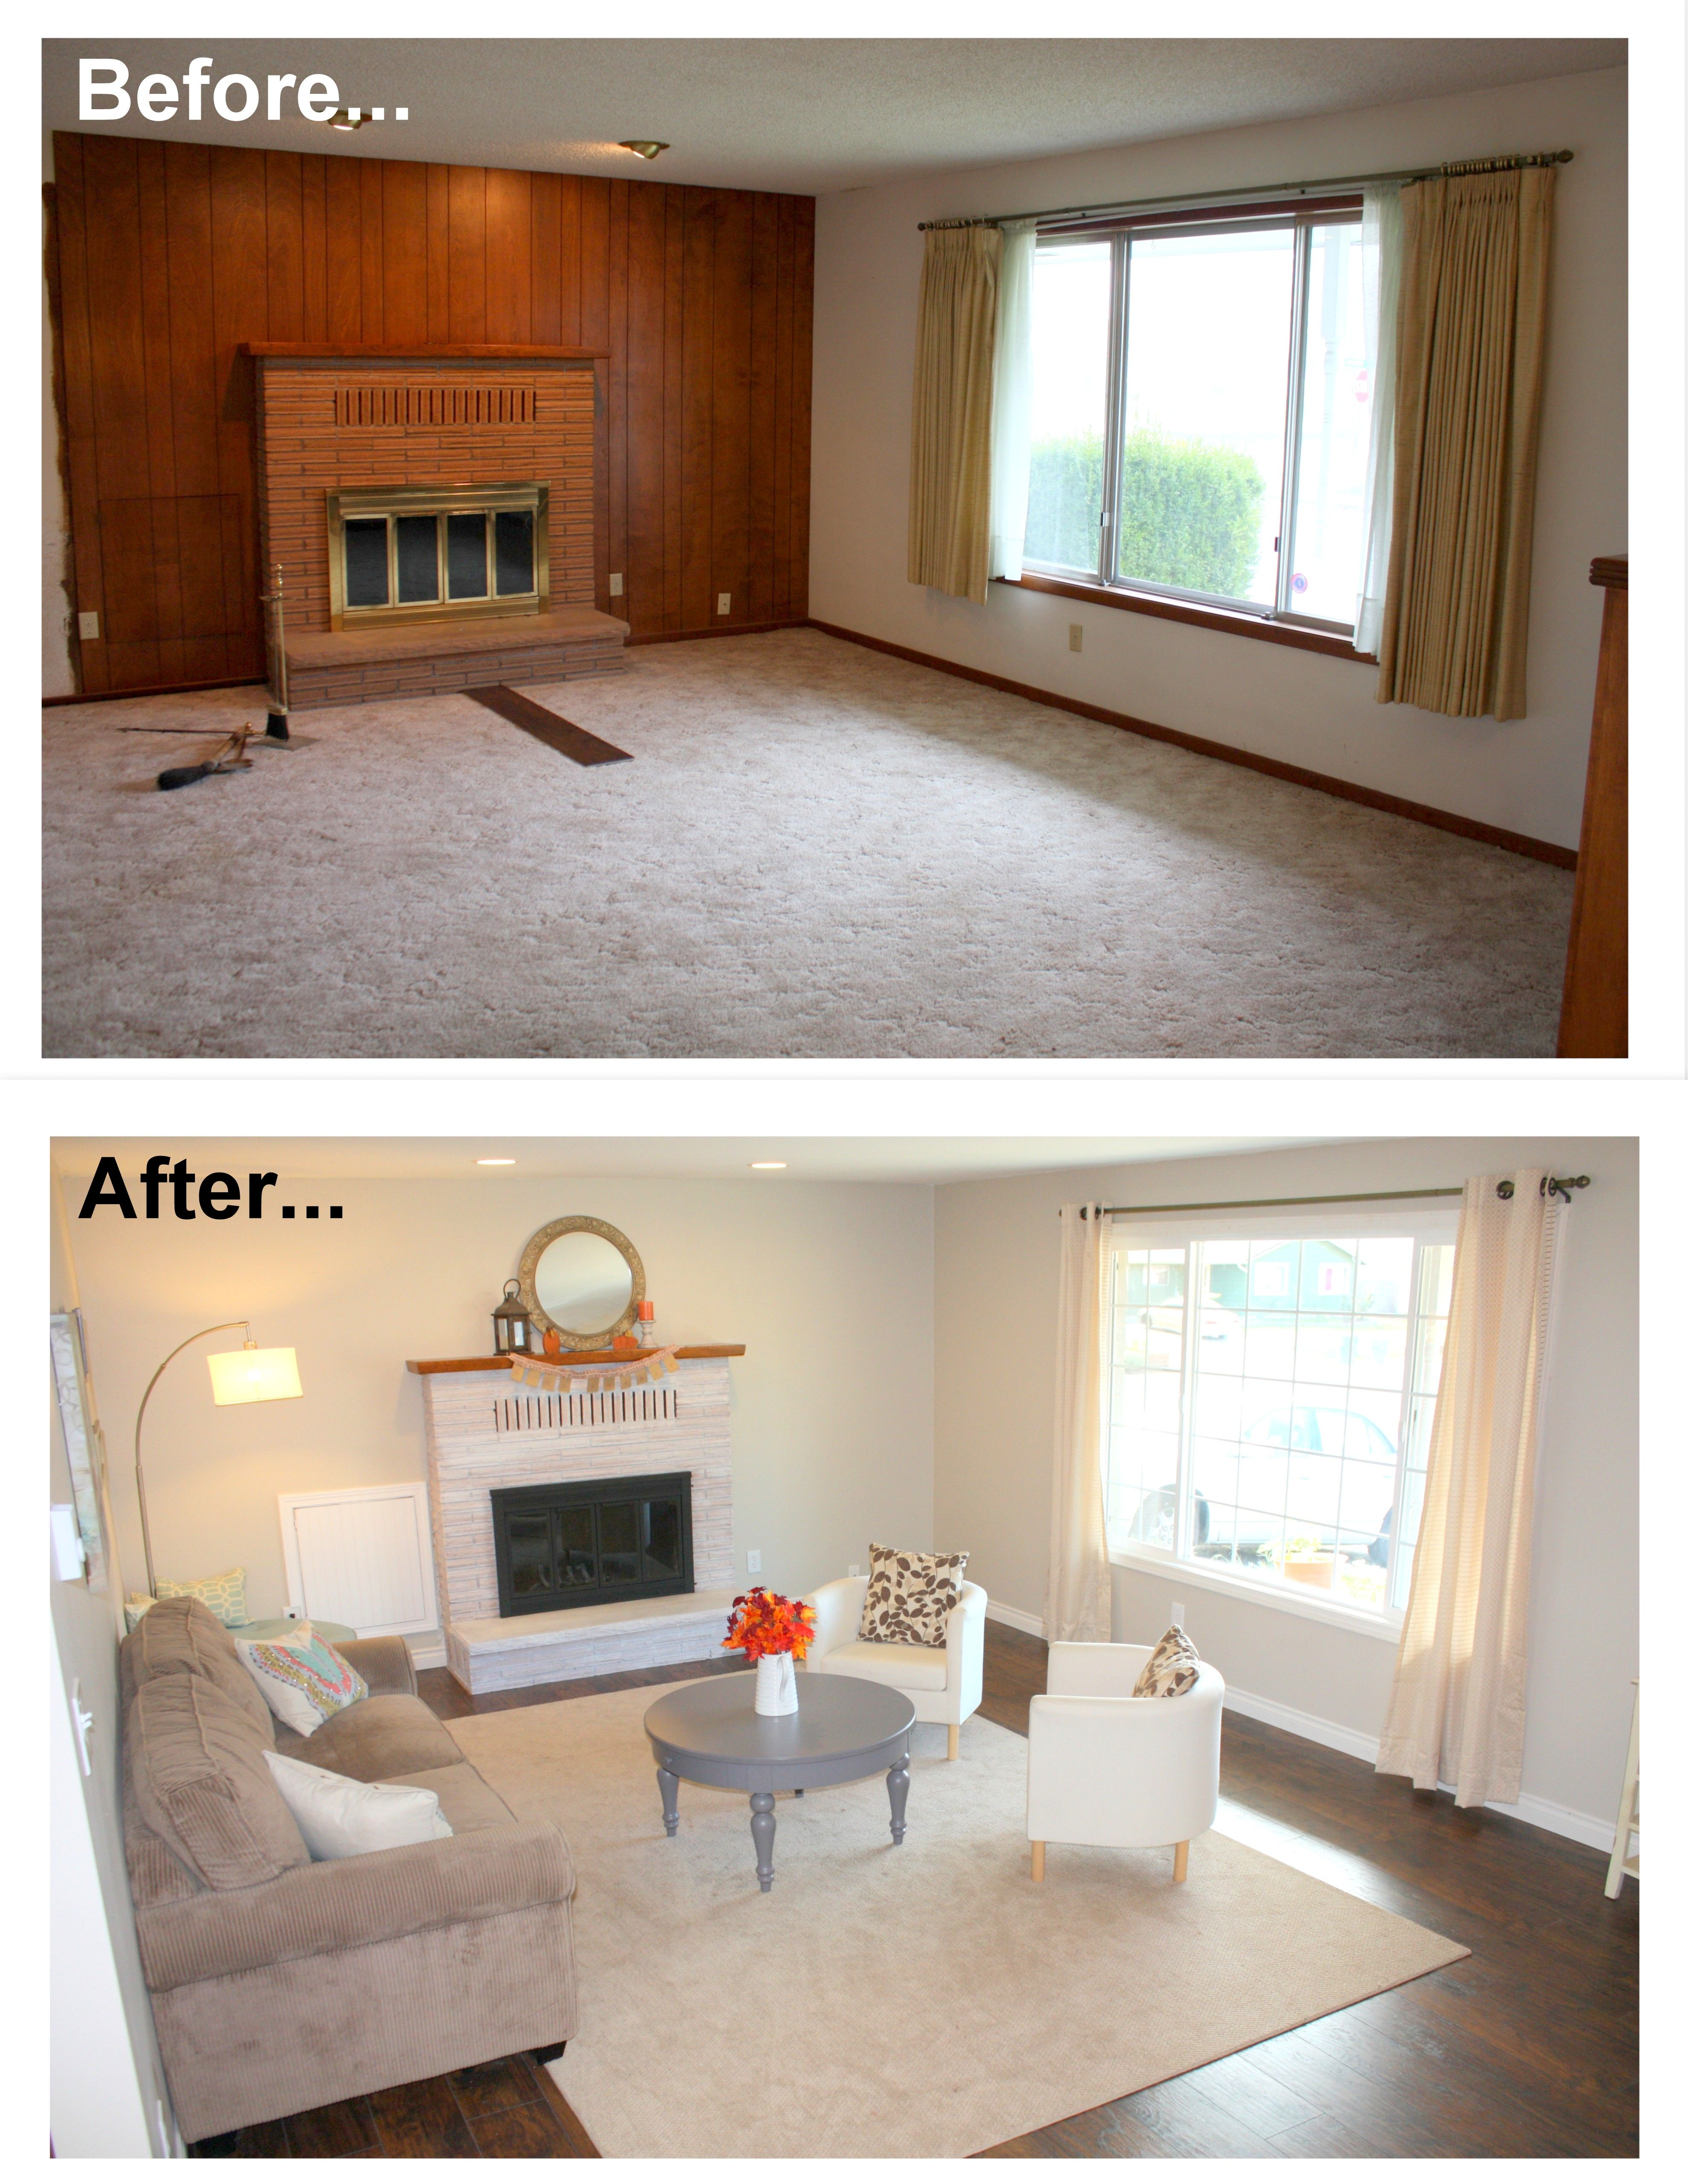 Us living room makeover remodel before and after new hardwood